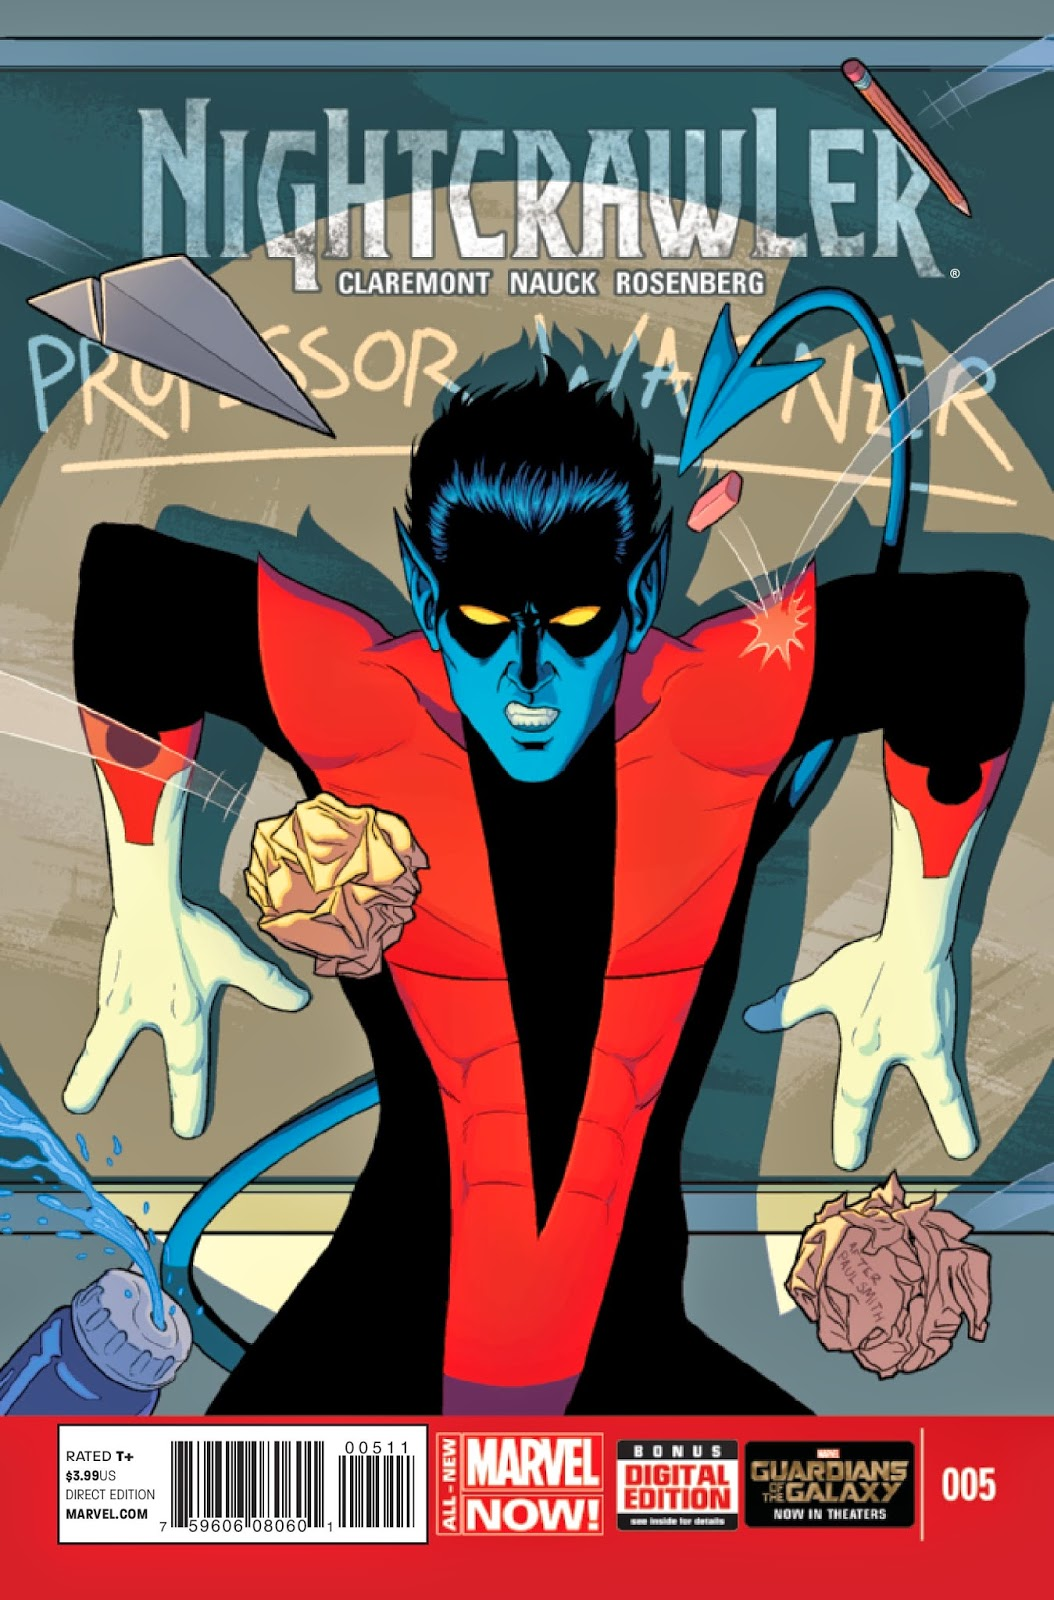 Marvel Nightcrawler review